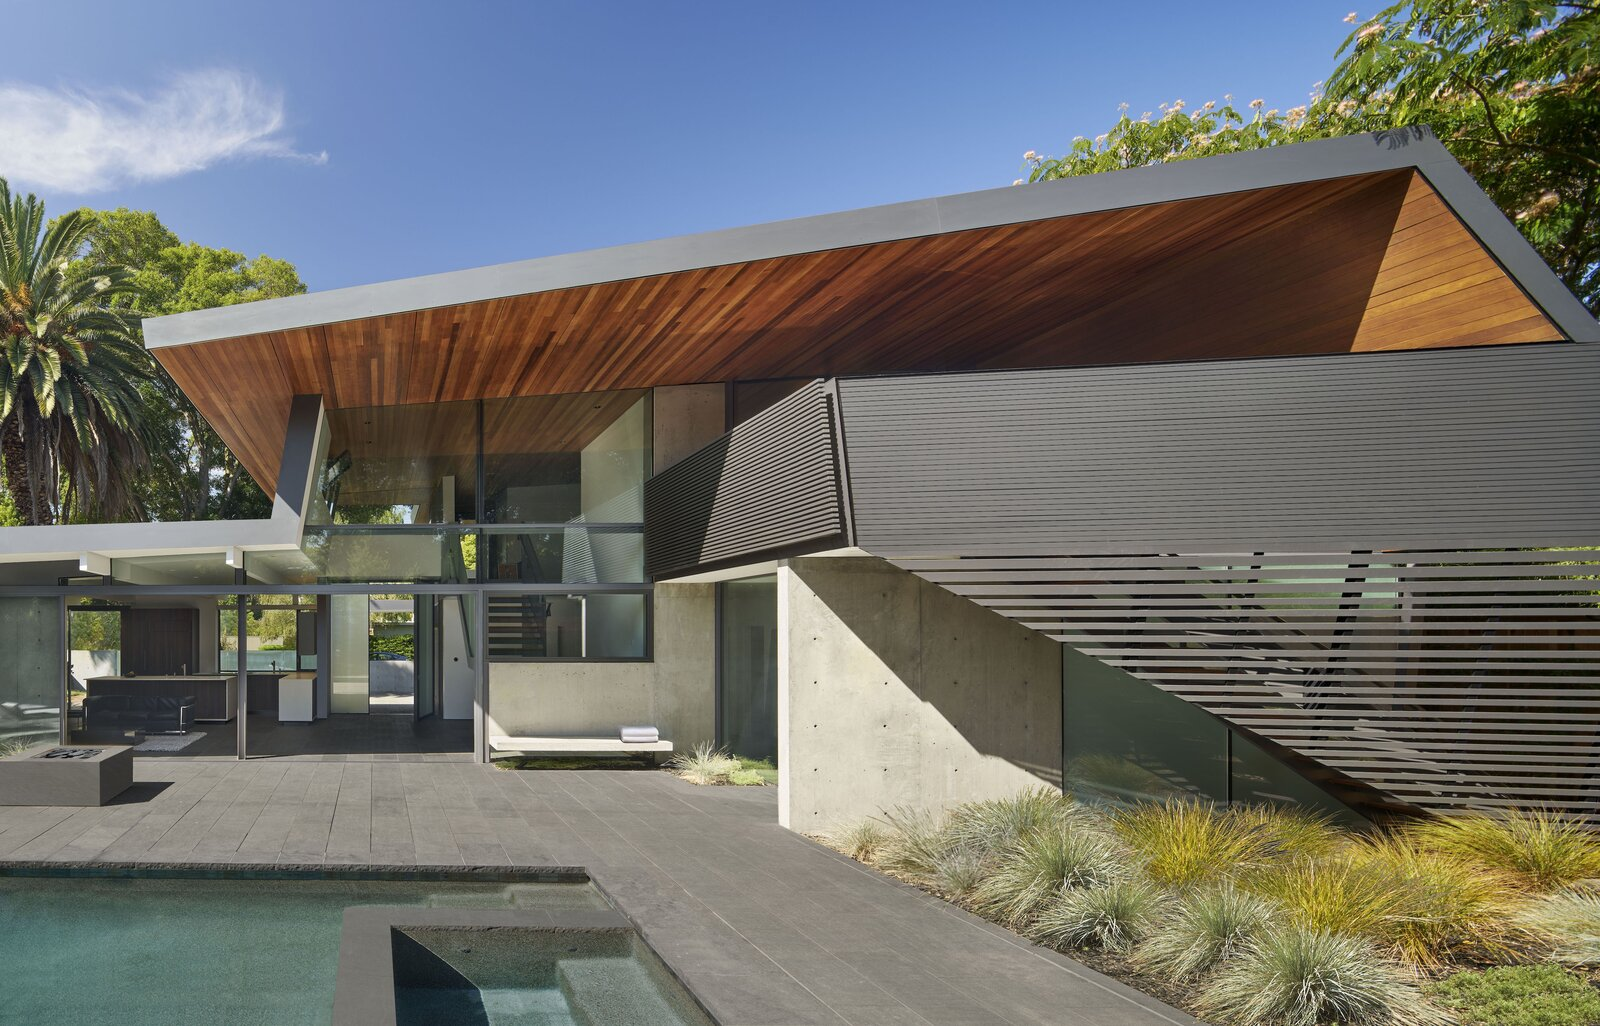 Photo 1 of 11 in Edgewood House by Terry & Terry Architecture